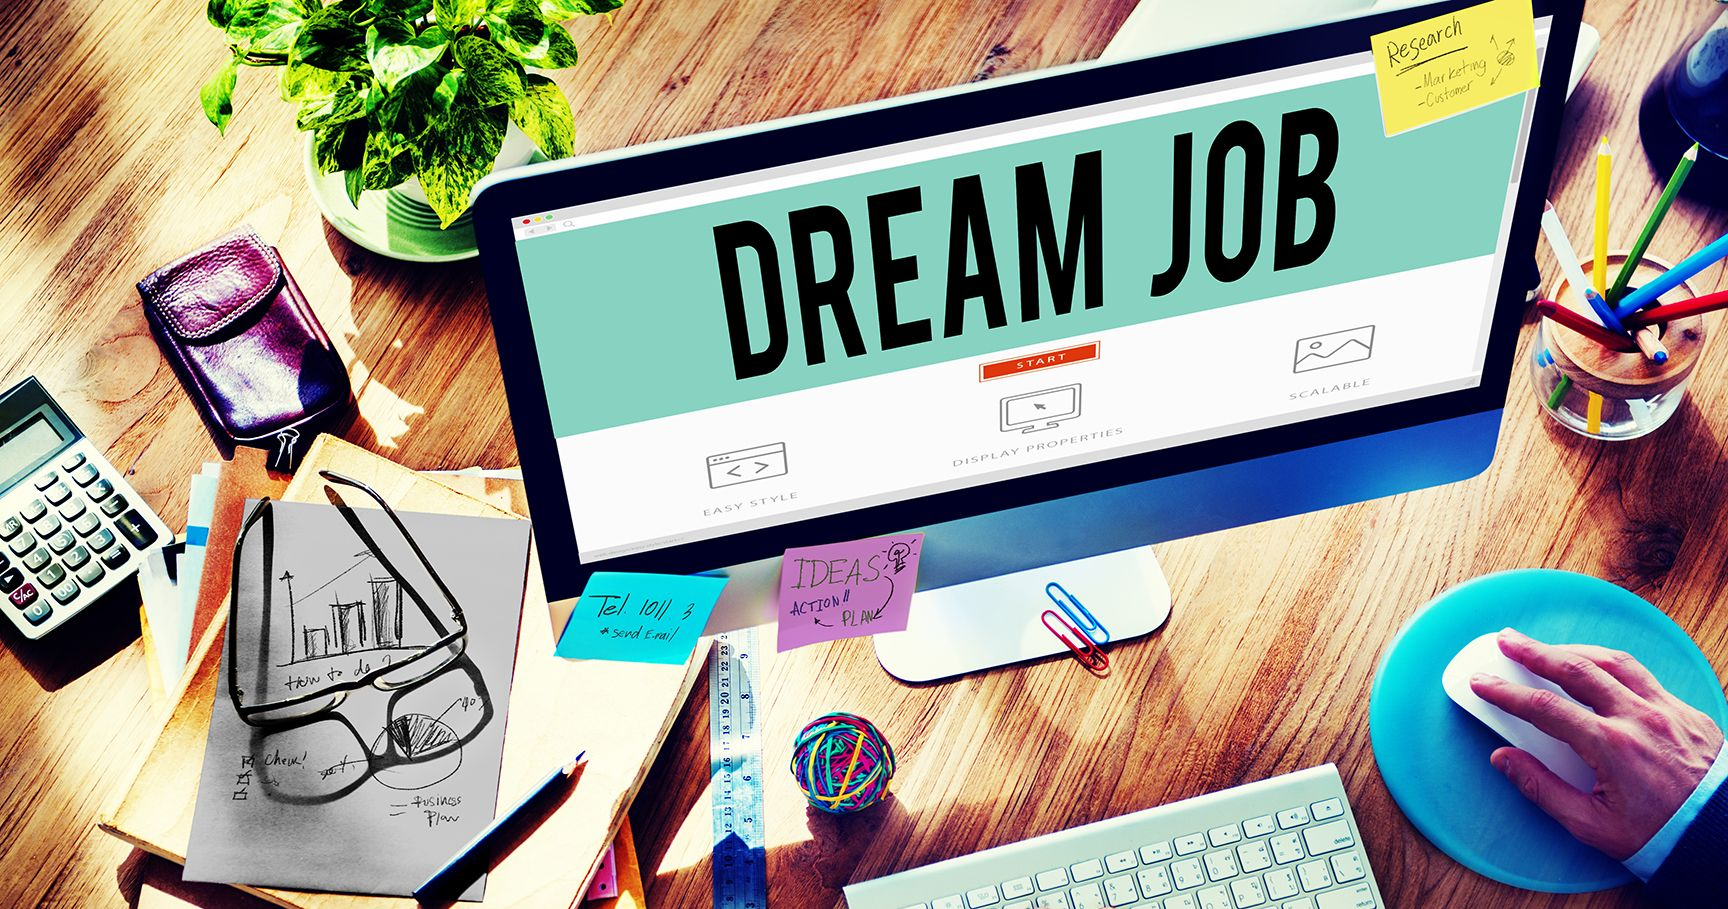 What Makes The Ultimate Dream Job?